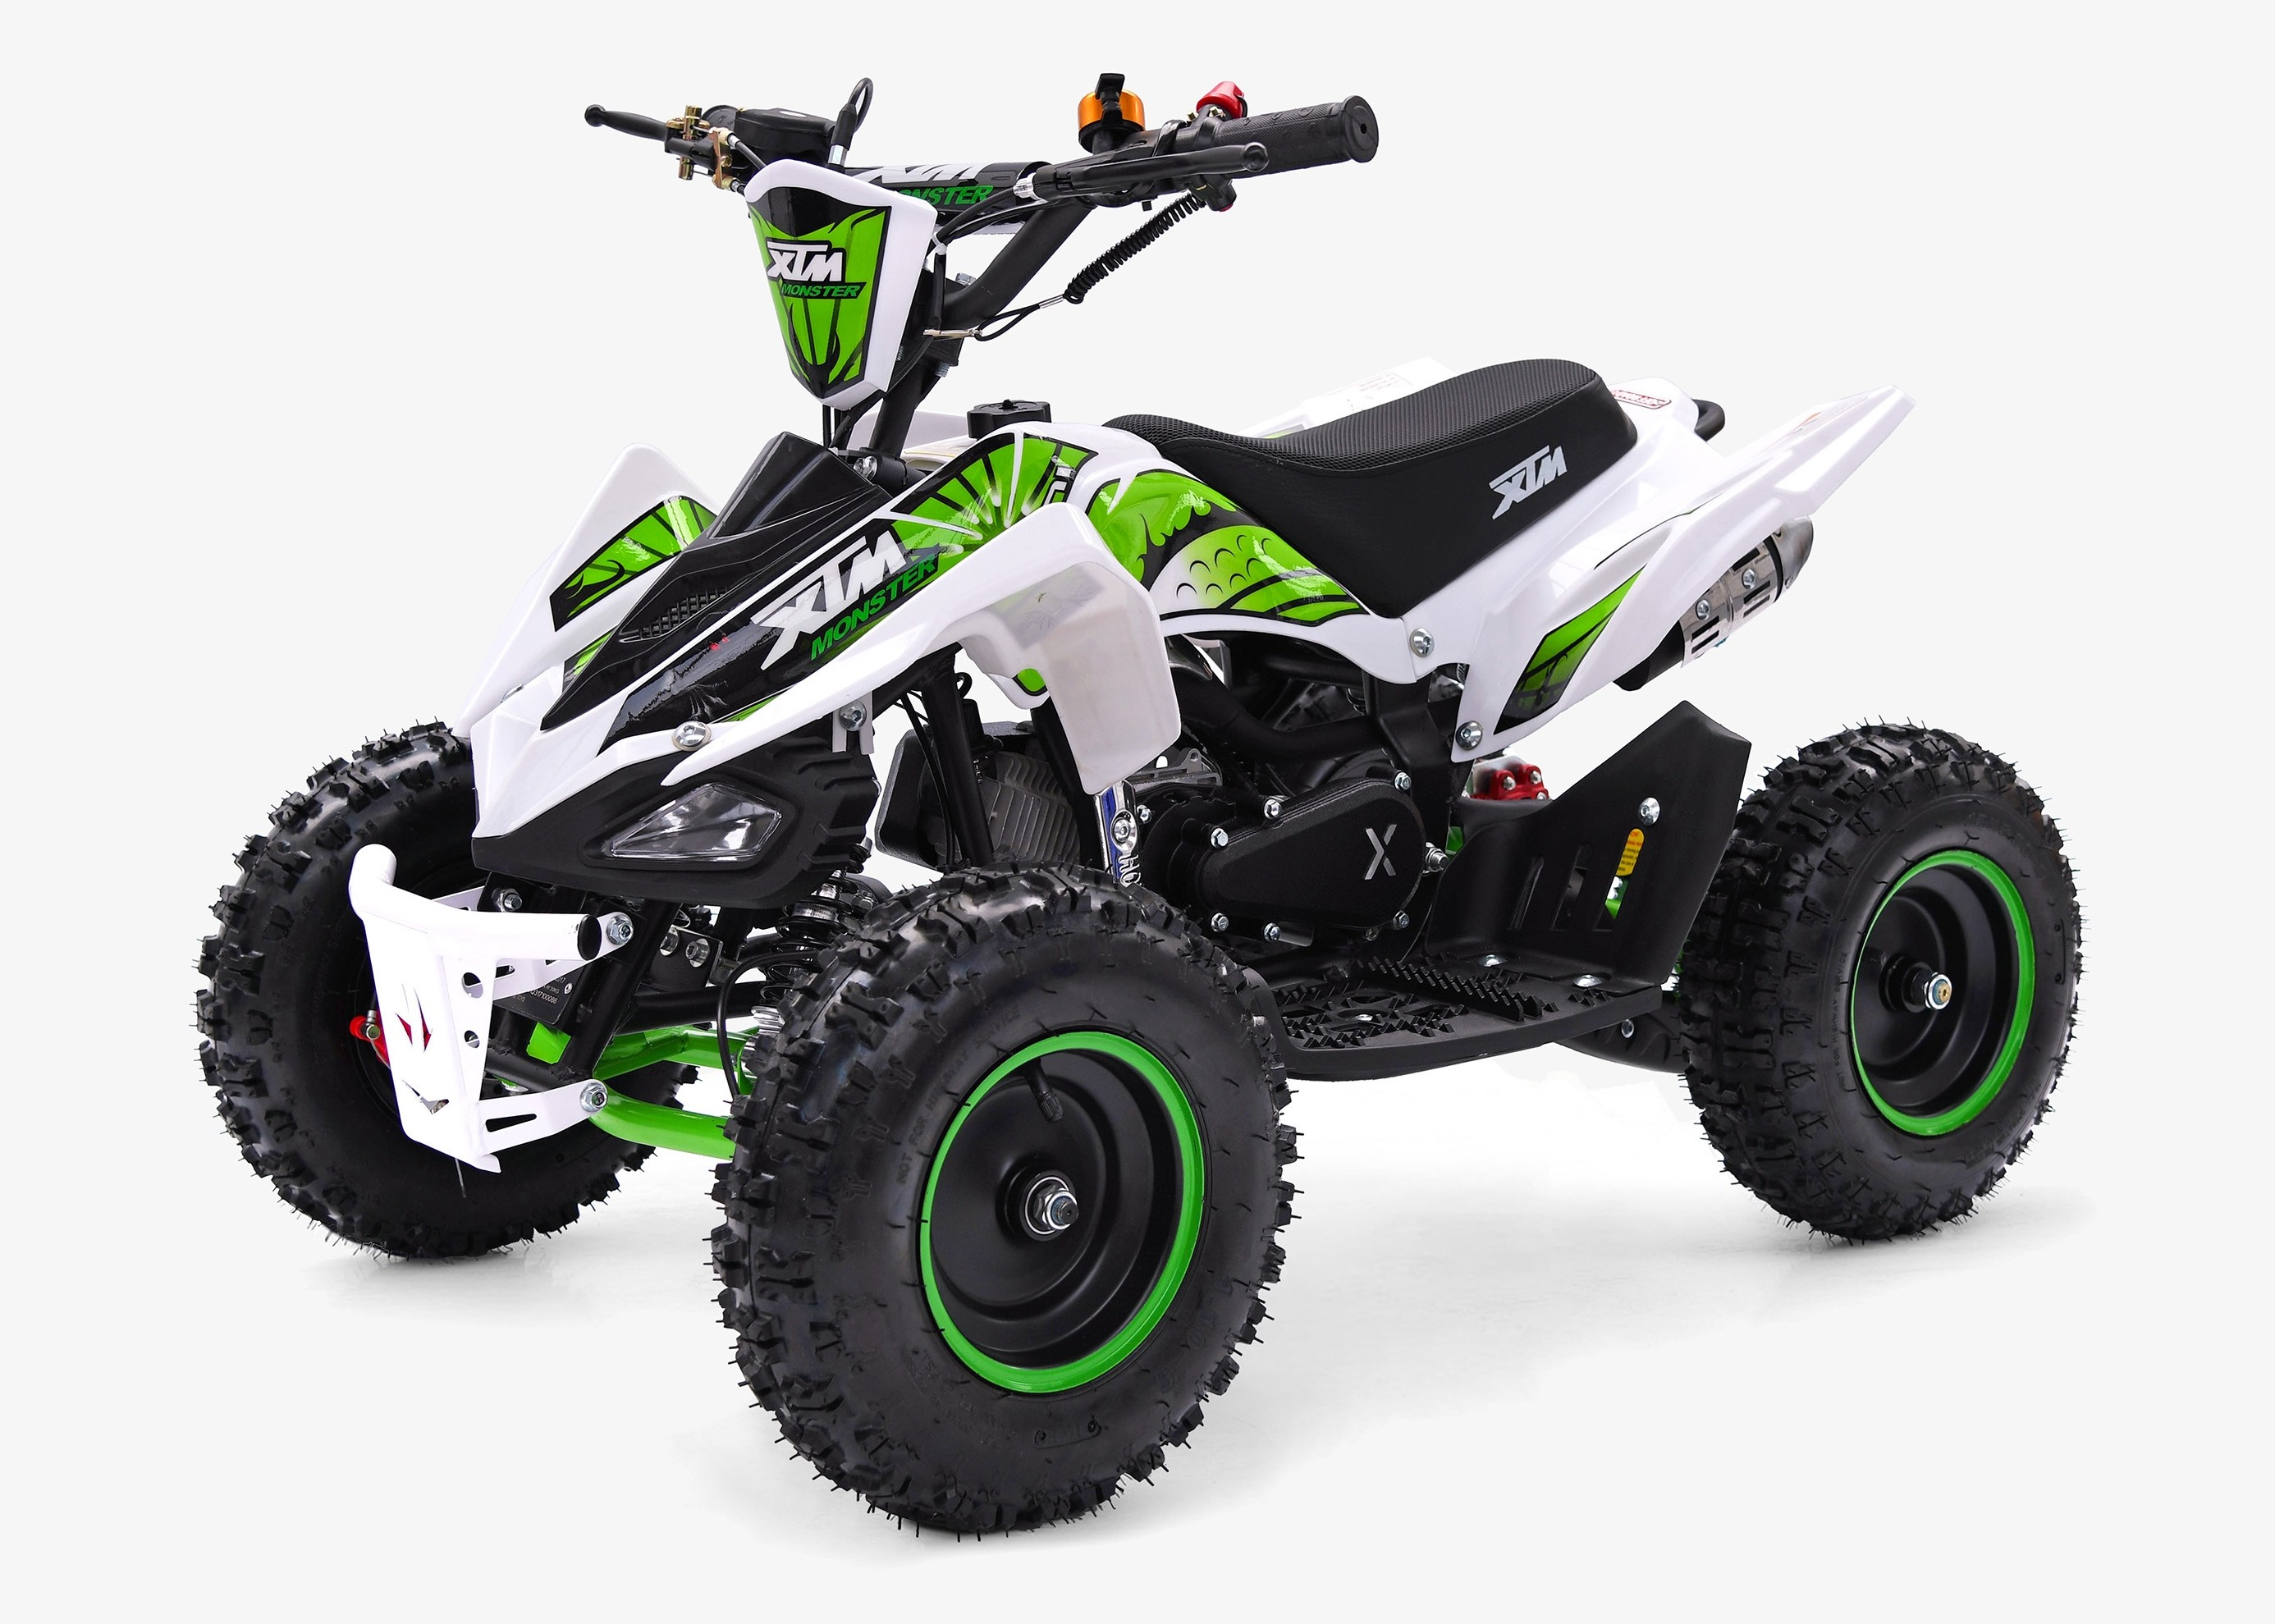 XTM MONSTER 50cc QUAD BIKE WHITE GREEN